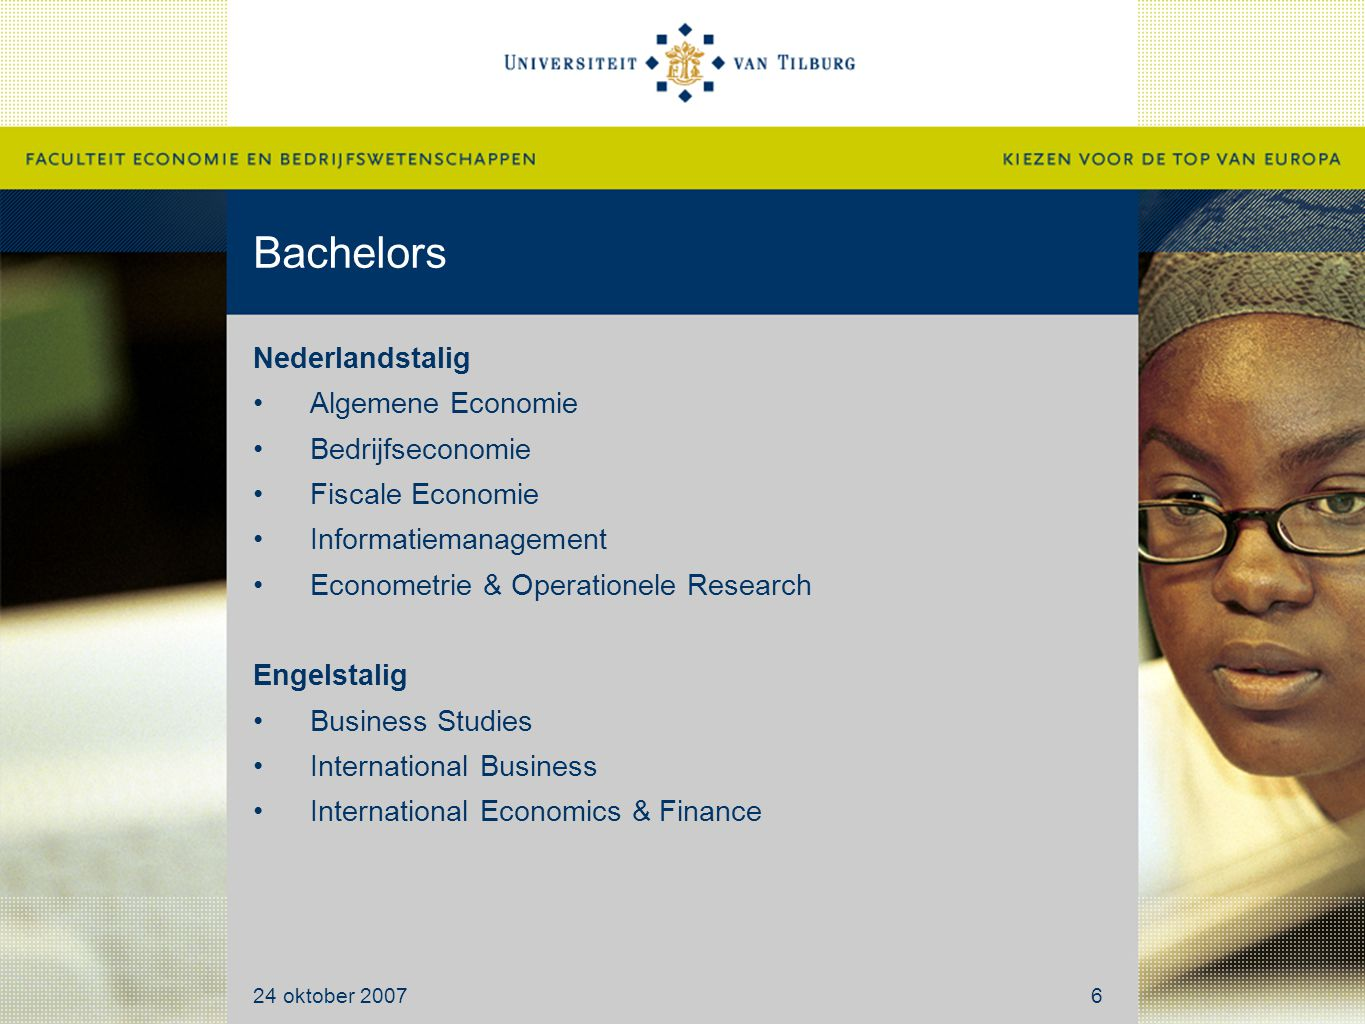 Bachelors Nederlandstalig Algemene Economie Bedrijfseconomie Fiscale Economie Informatiemanagement Econometrie & Operationele Research Engelstalig Business Studies International Business International Economics & Finance 24 oktober 20076